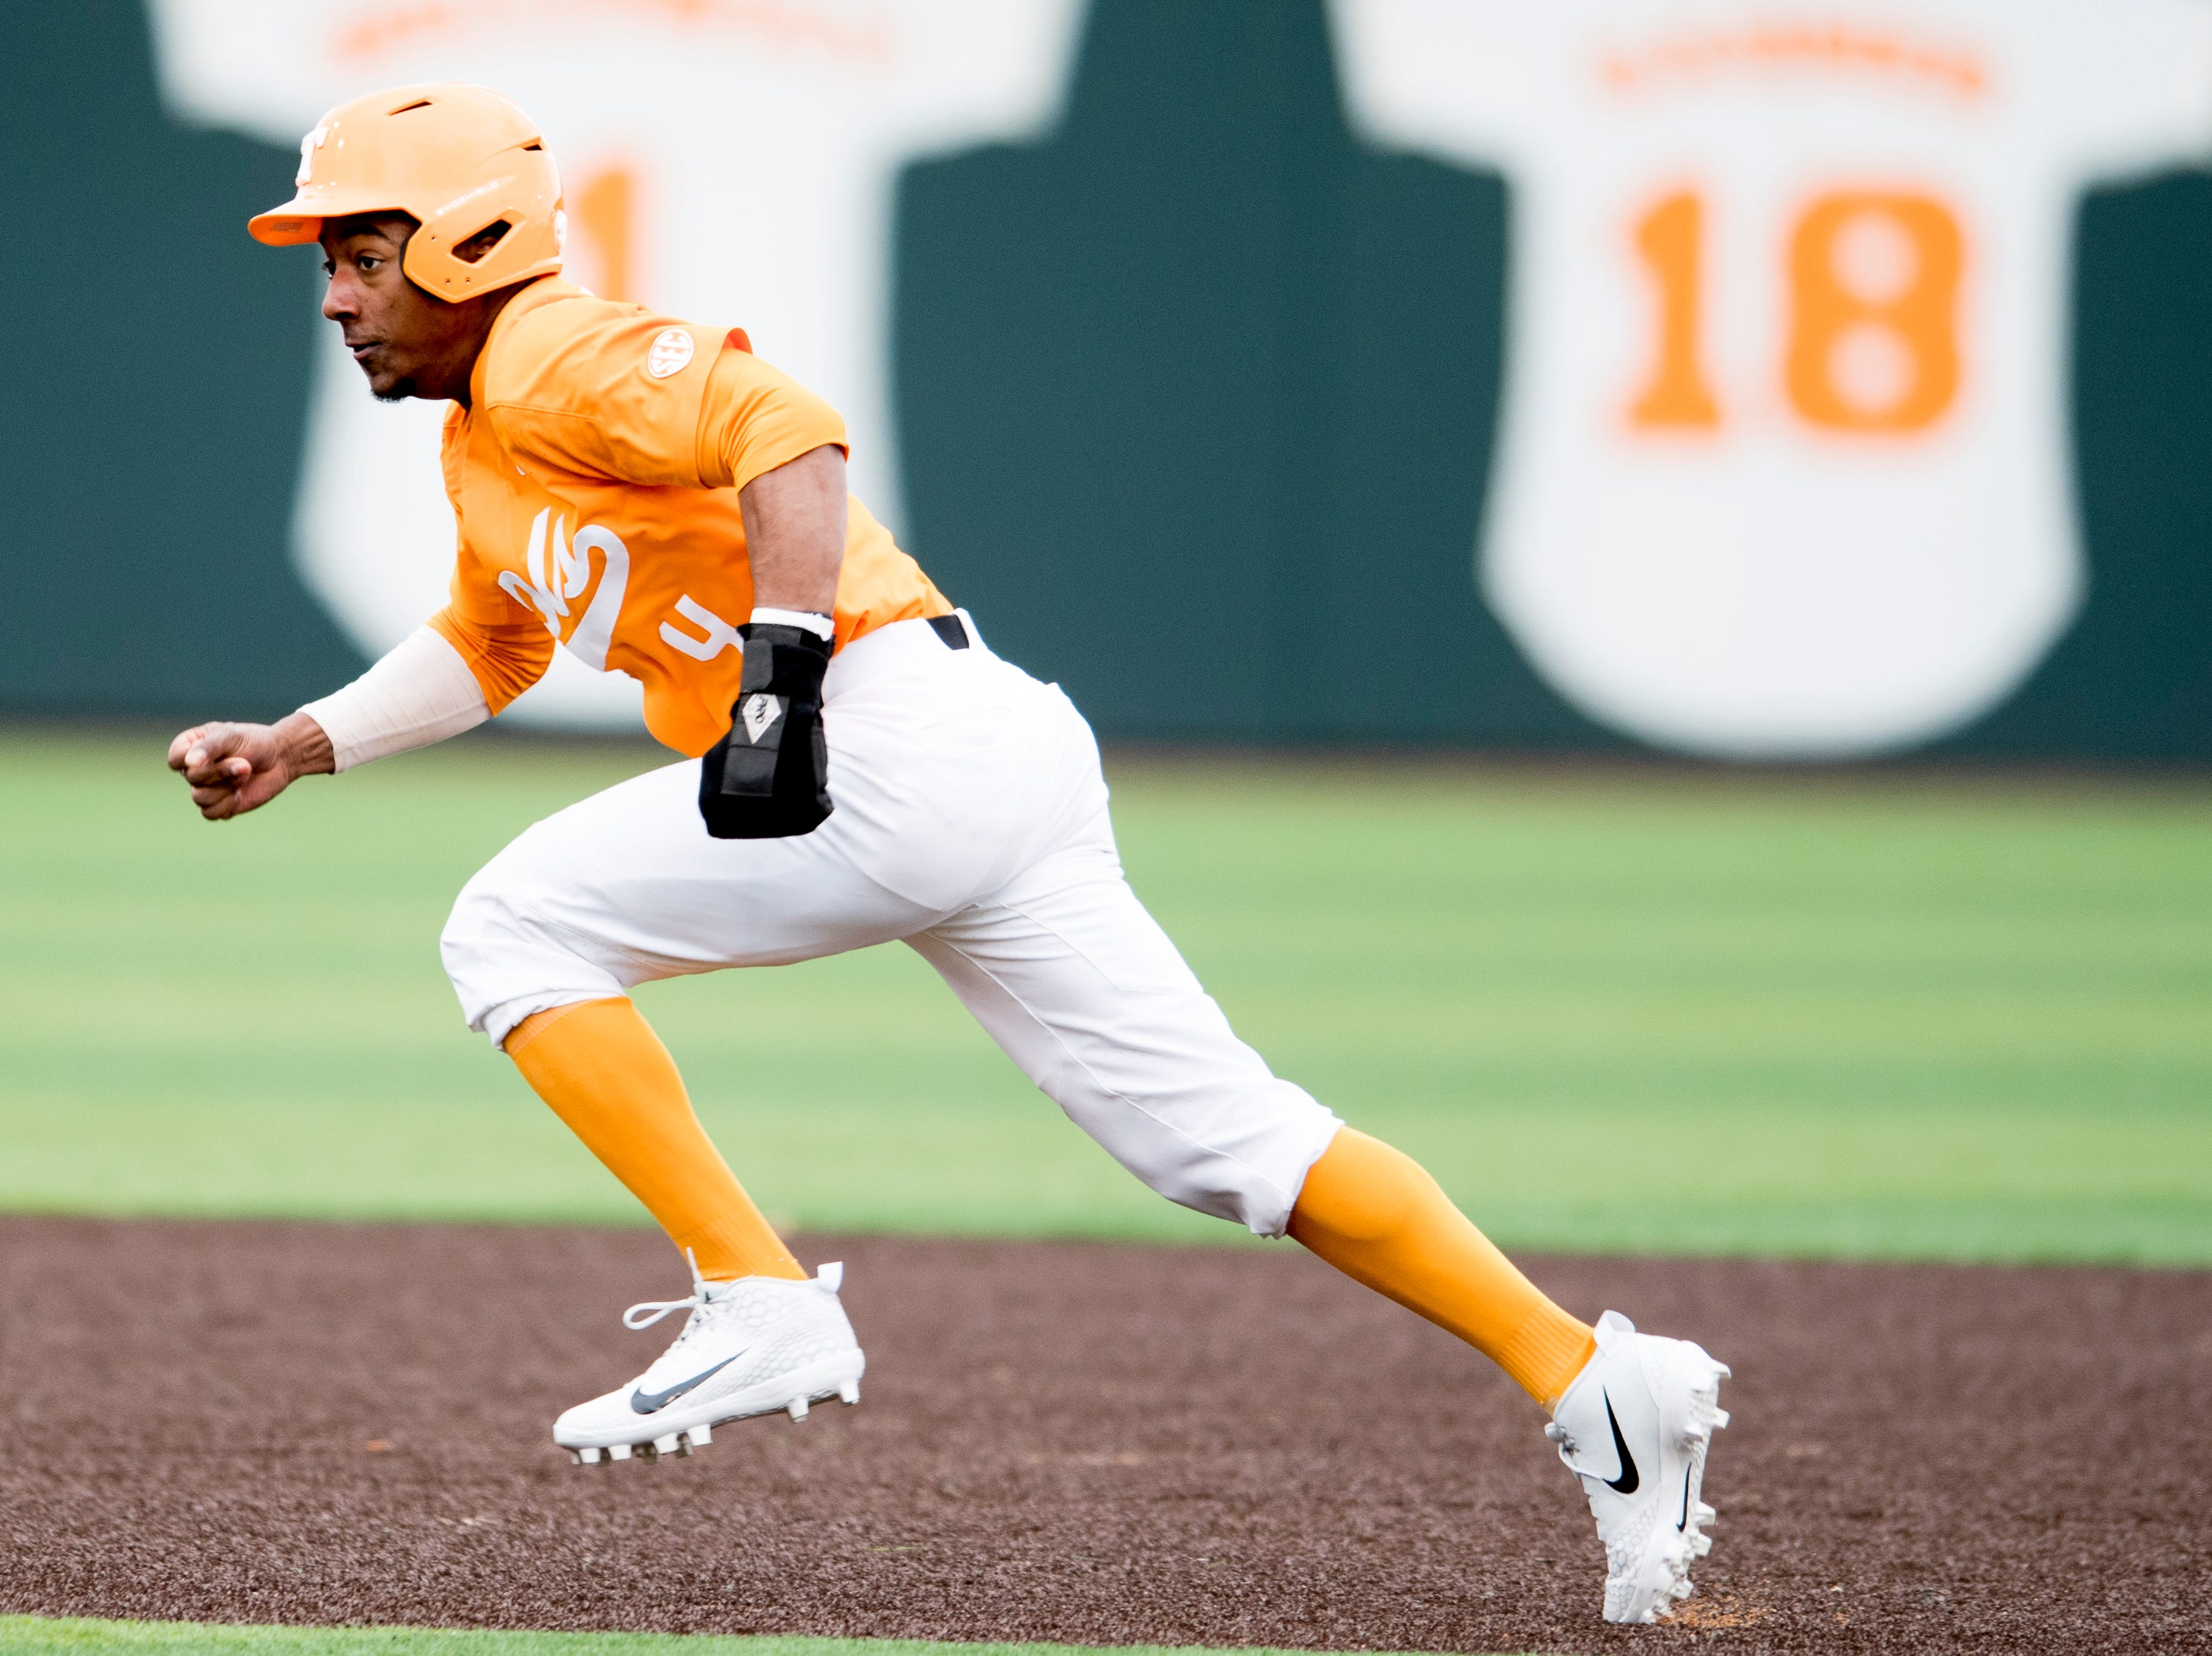 Tennessee outfielder/infielder Jay Charleston (4) runs toward third base during a Tennessee baseball home opener game against Appalachian State at Lindsey Nelson Stadium in Knoxville, Tennessee on Saturday, February 16, 2019.